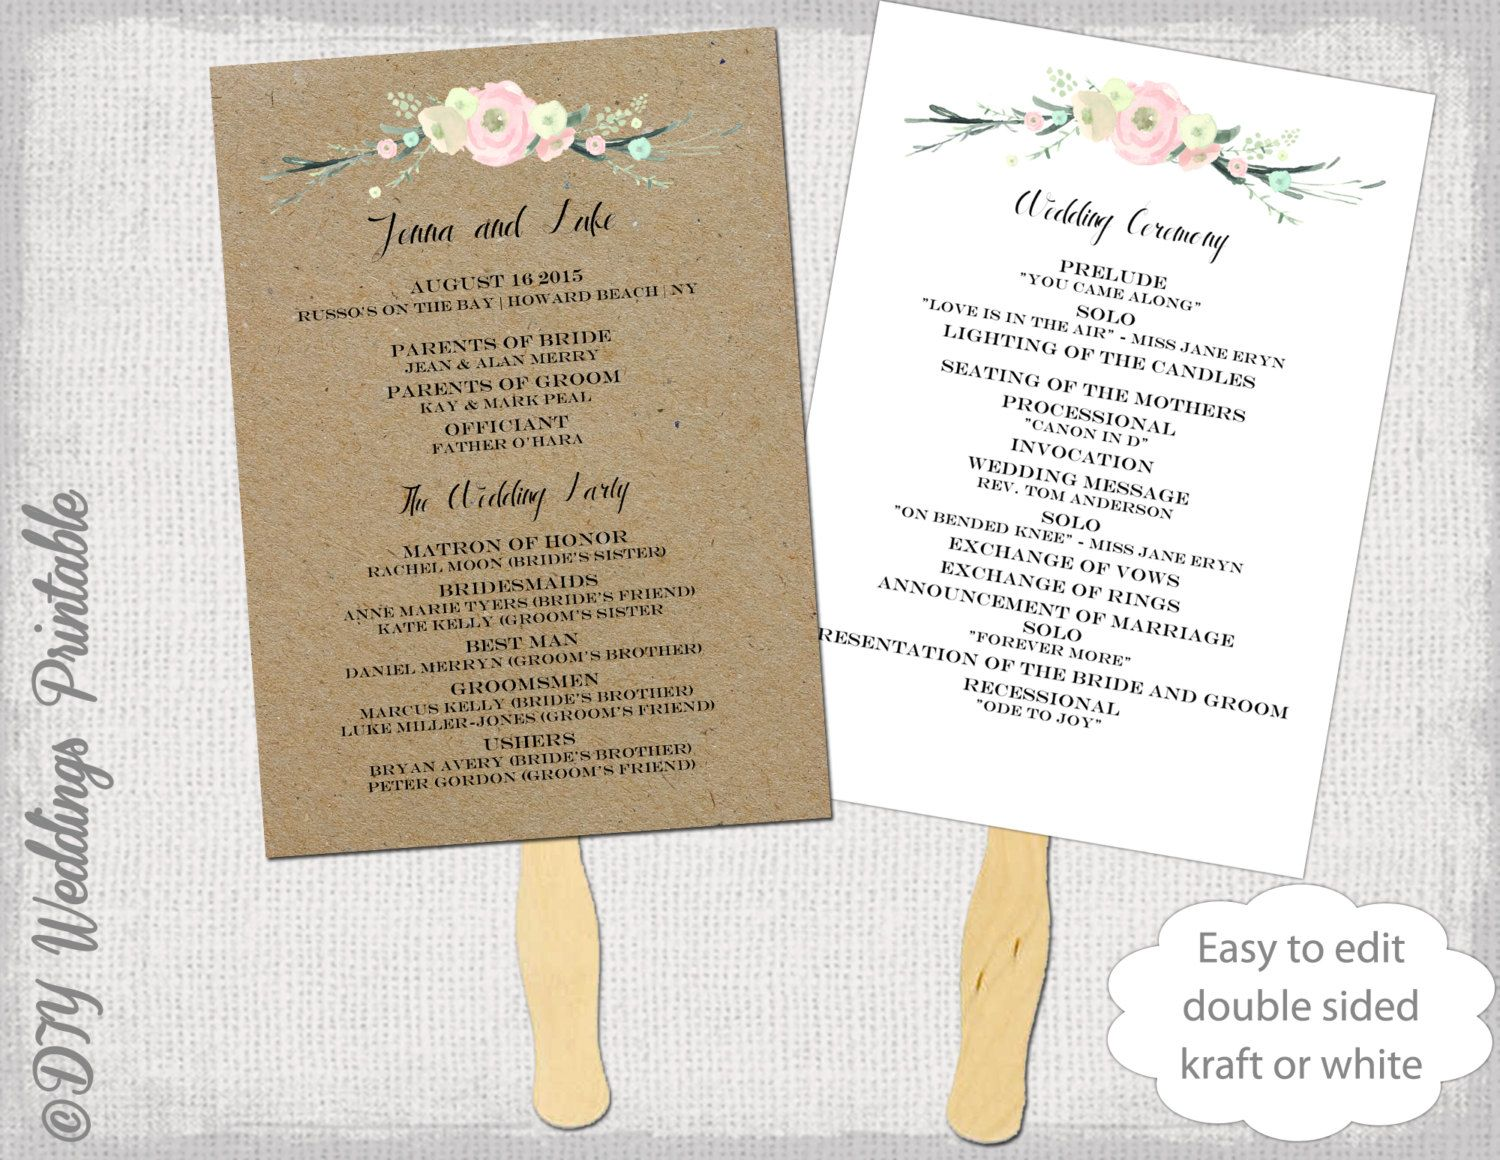 Wedding Program Fan Template With A Rustic Flowers Design On Kraft Background Or White Both Included For You To Make Your